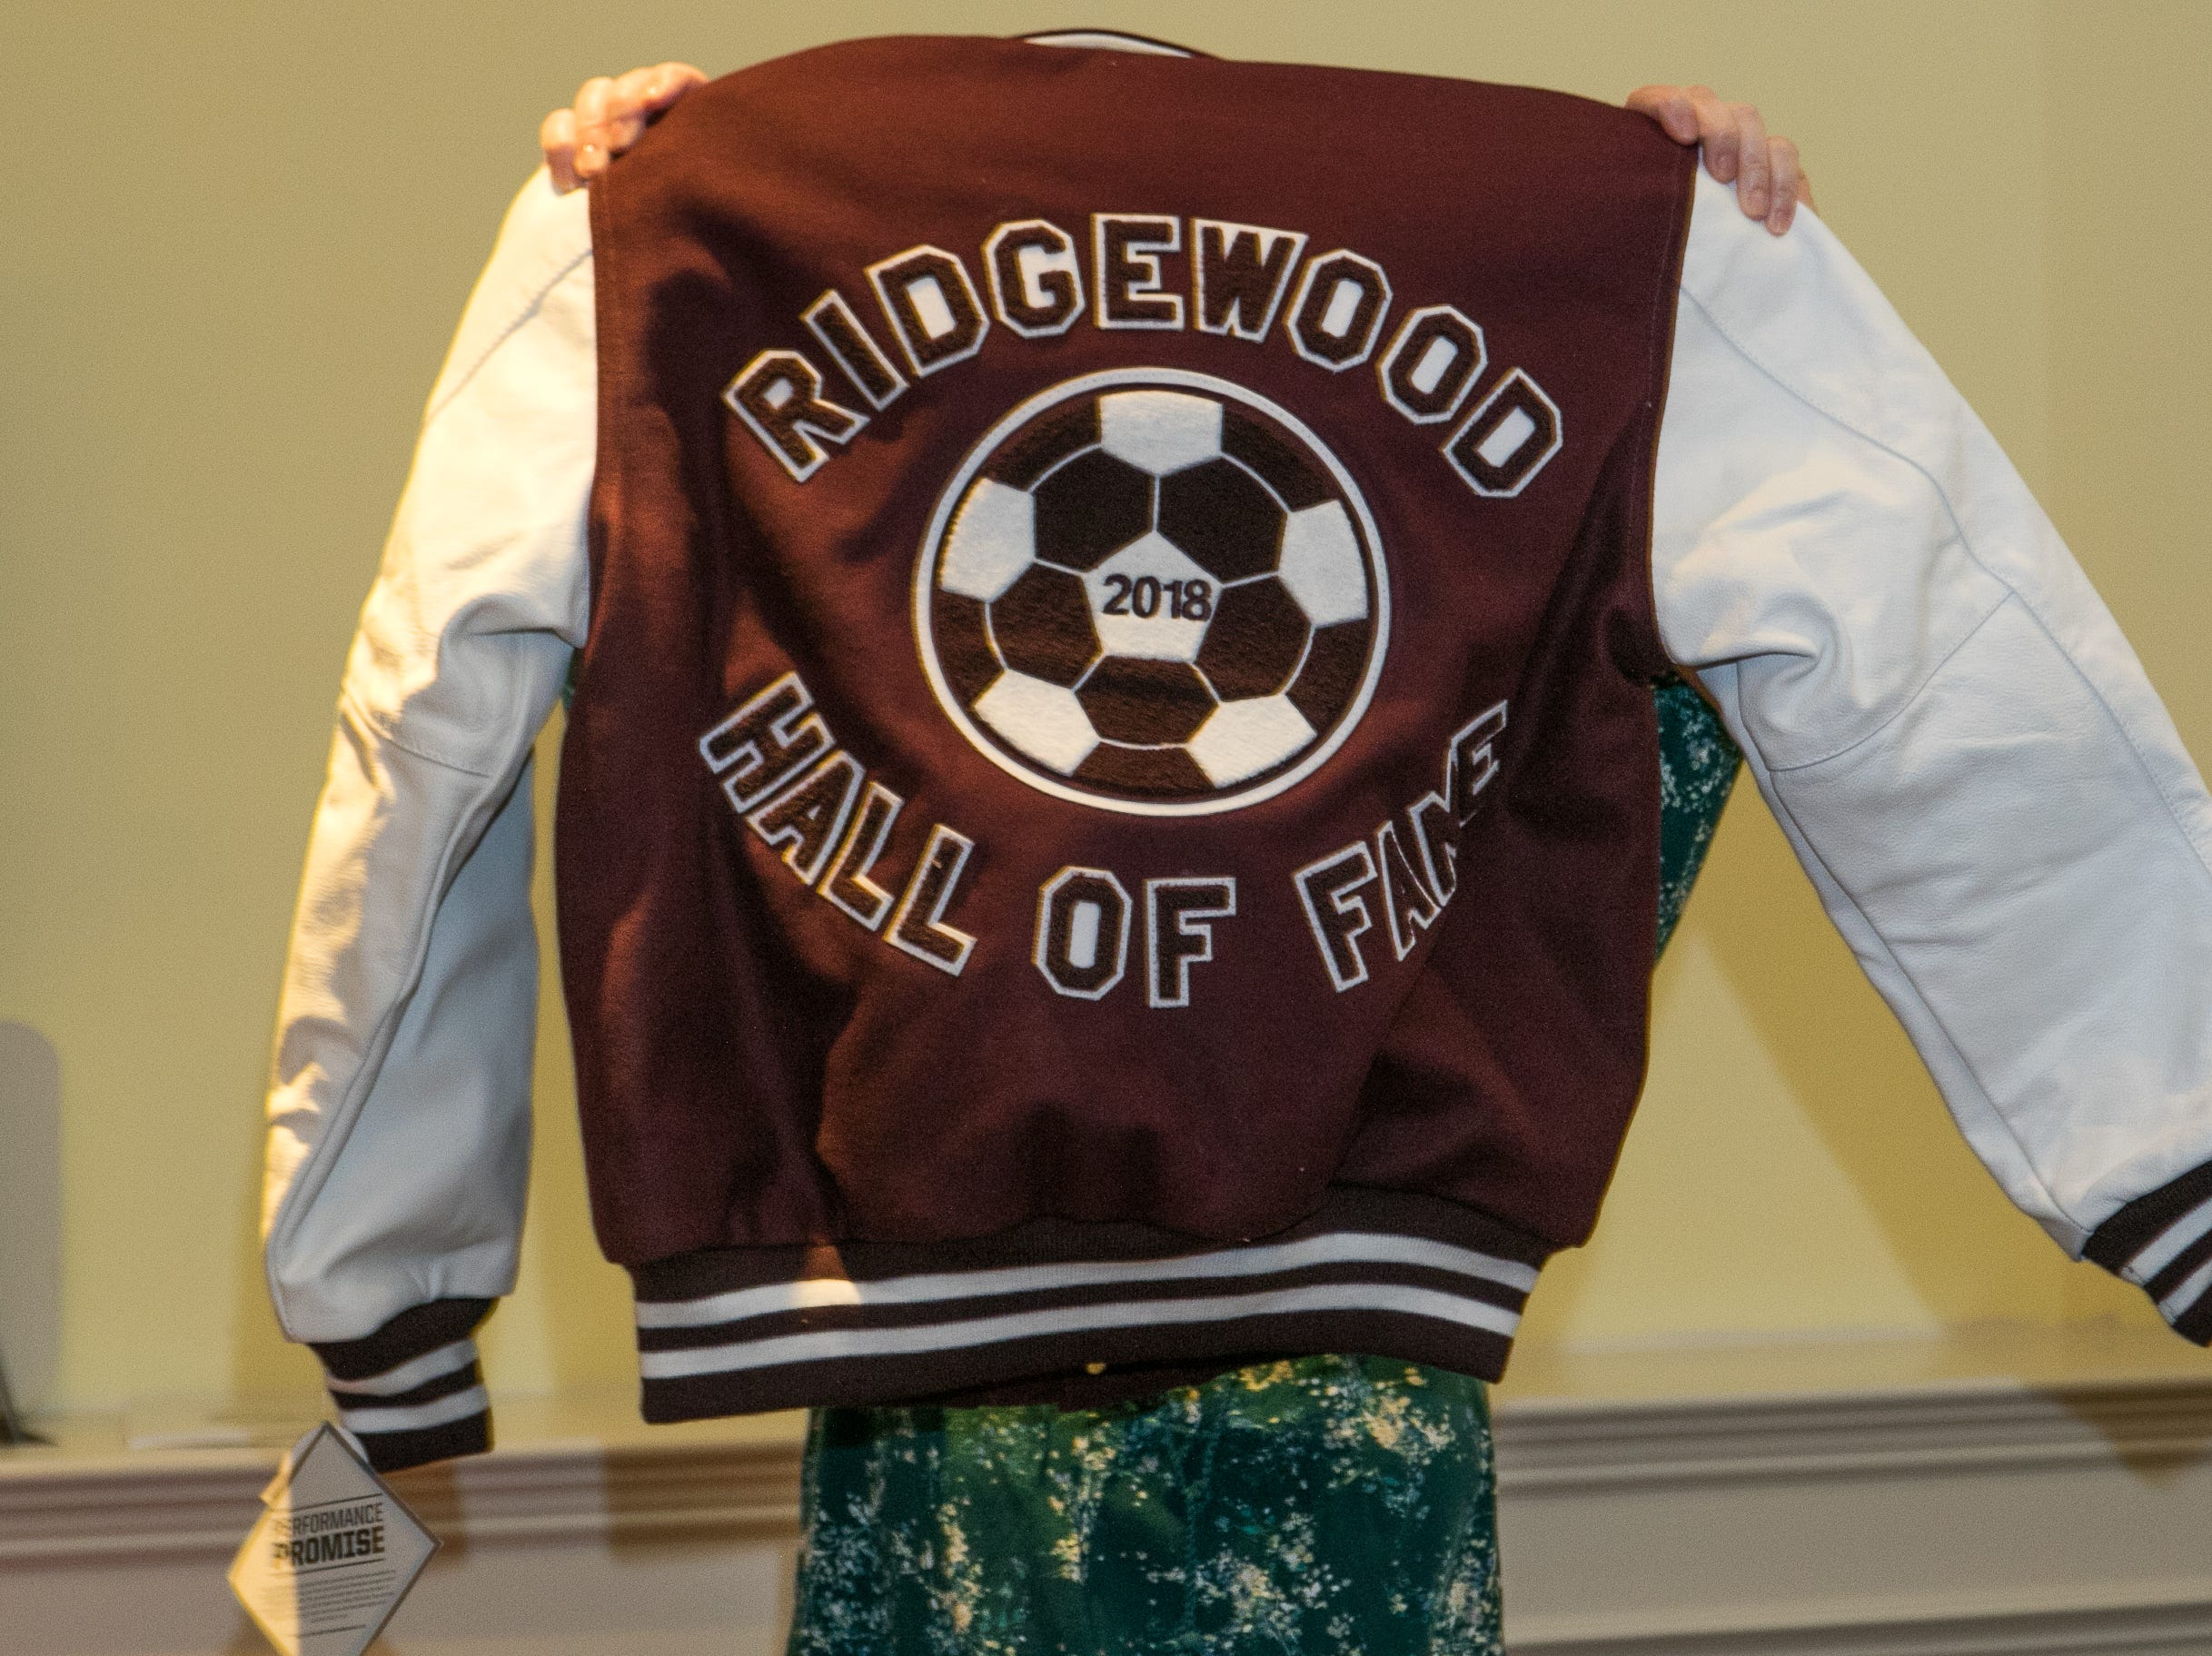 Ridgewood High School held it's Hall of Fame Class of 2018 Induction Dinner, honoring long time coach Jeff Yearing at the Brickhouse in Wyckoff. 04/05/2019